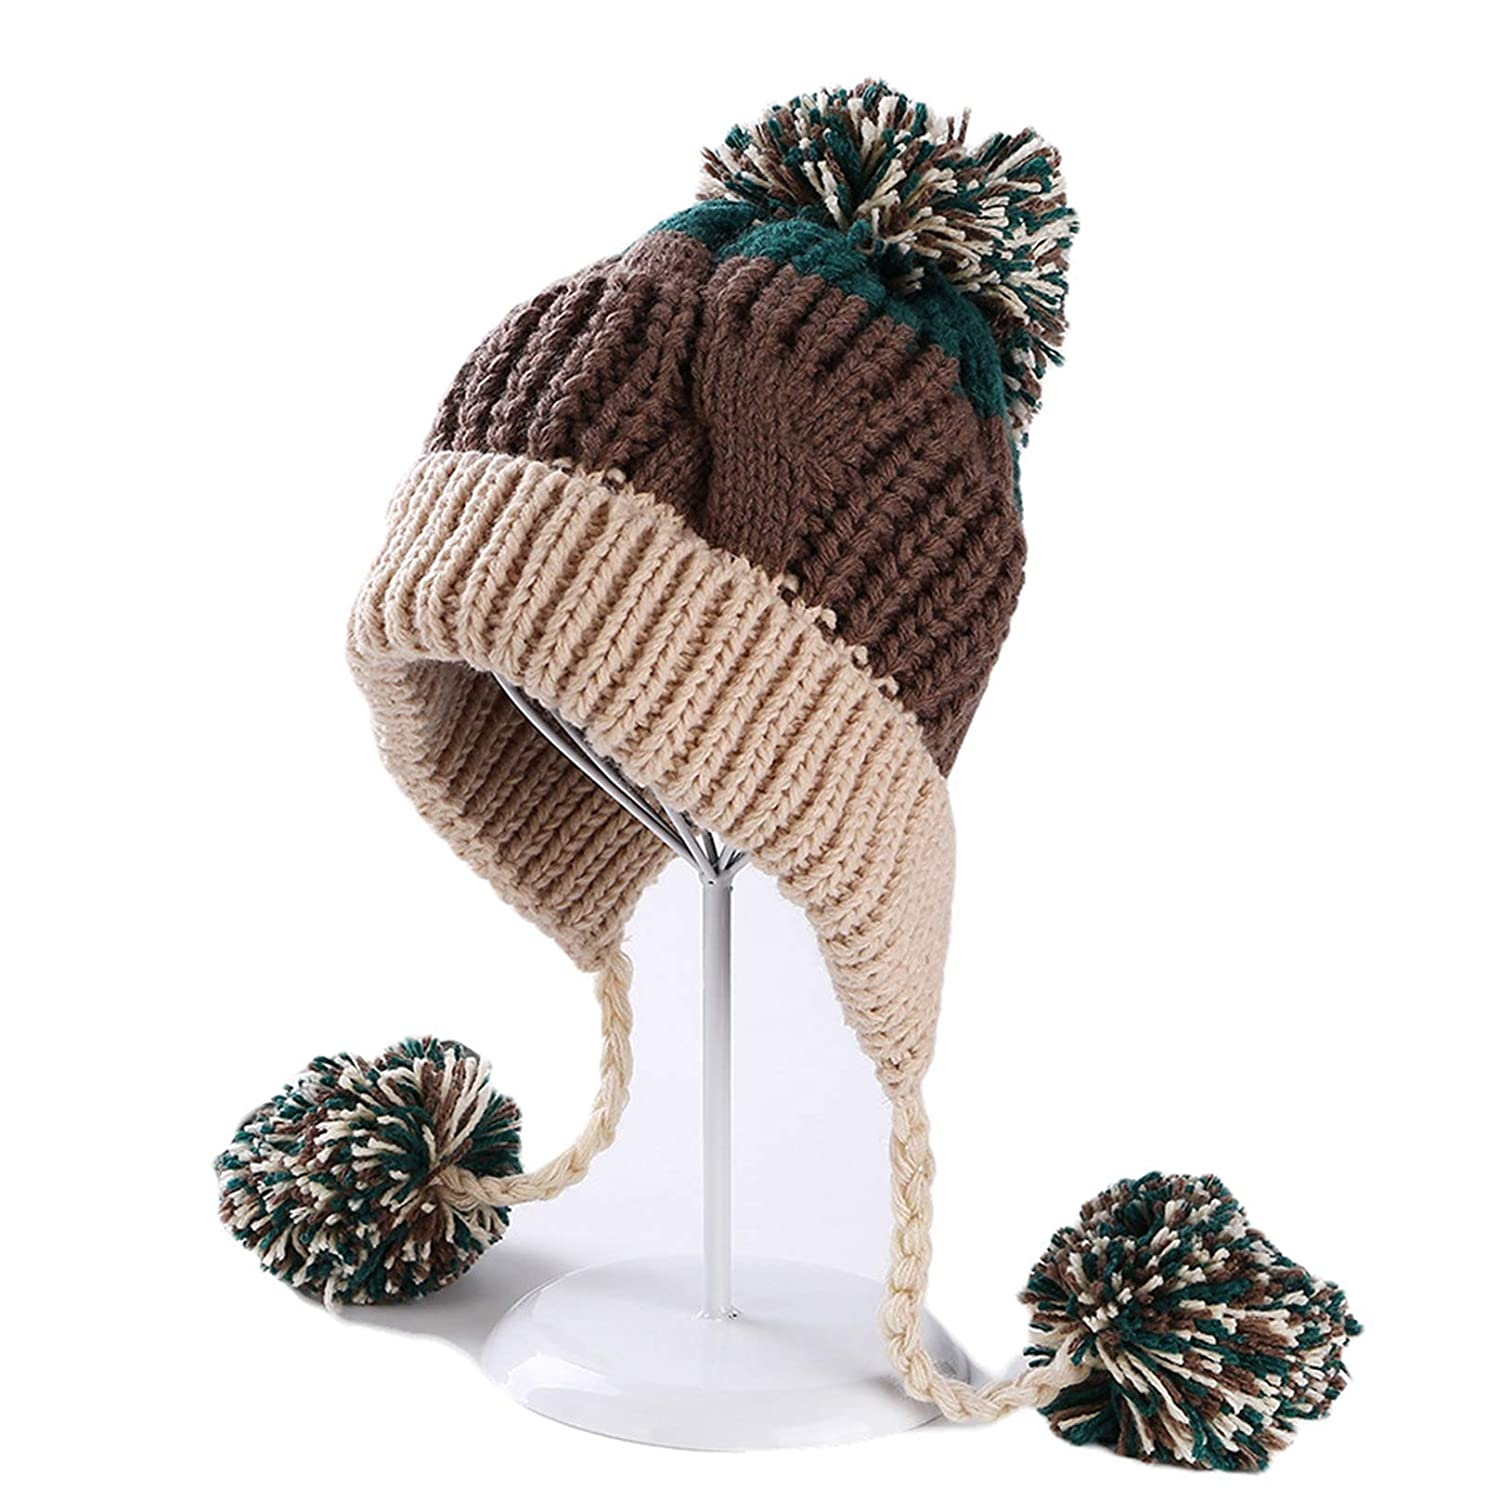 Vic Gray Women Girls Trendy Cute Beanies Soft Fur Pom Pom Knitted Warm  Female Winter Skullies Hats at Amazon Women s Clothing store  1ebd0ee57c5